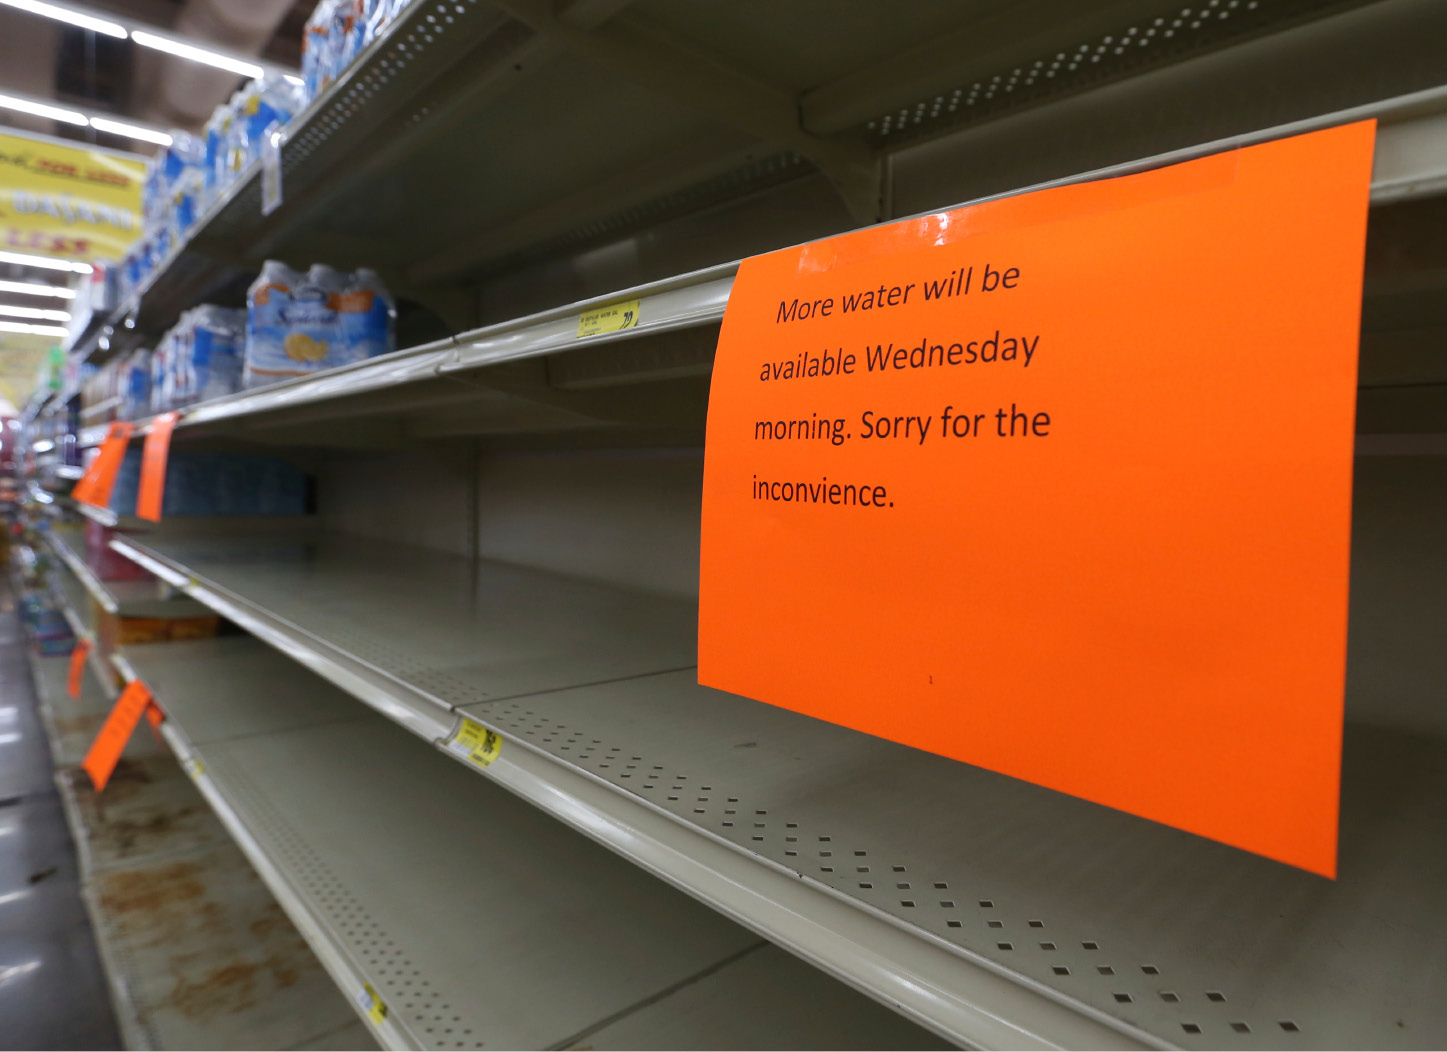 A shelf normally containing packaged water is empty at a Piggly Wiggly store Tueday, Sept. 5, 2017, in Panama City, Fla. Store managers informed shoppers that more water will be delivered on Sept.6 in the morning a residents prepare for Hurricane Irma. (patti Blake/News Herald via AP)